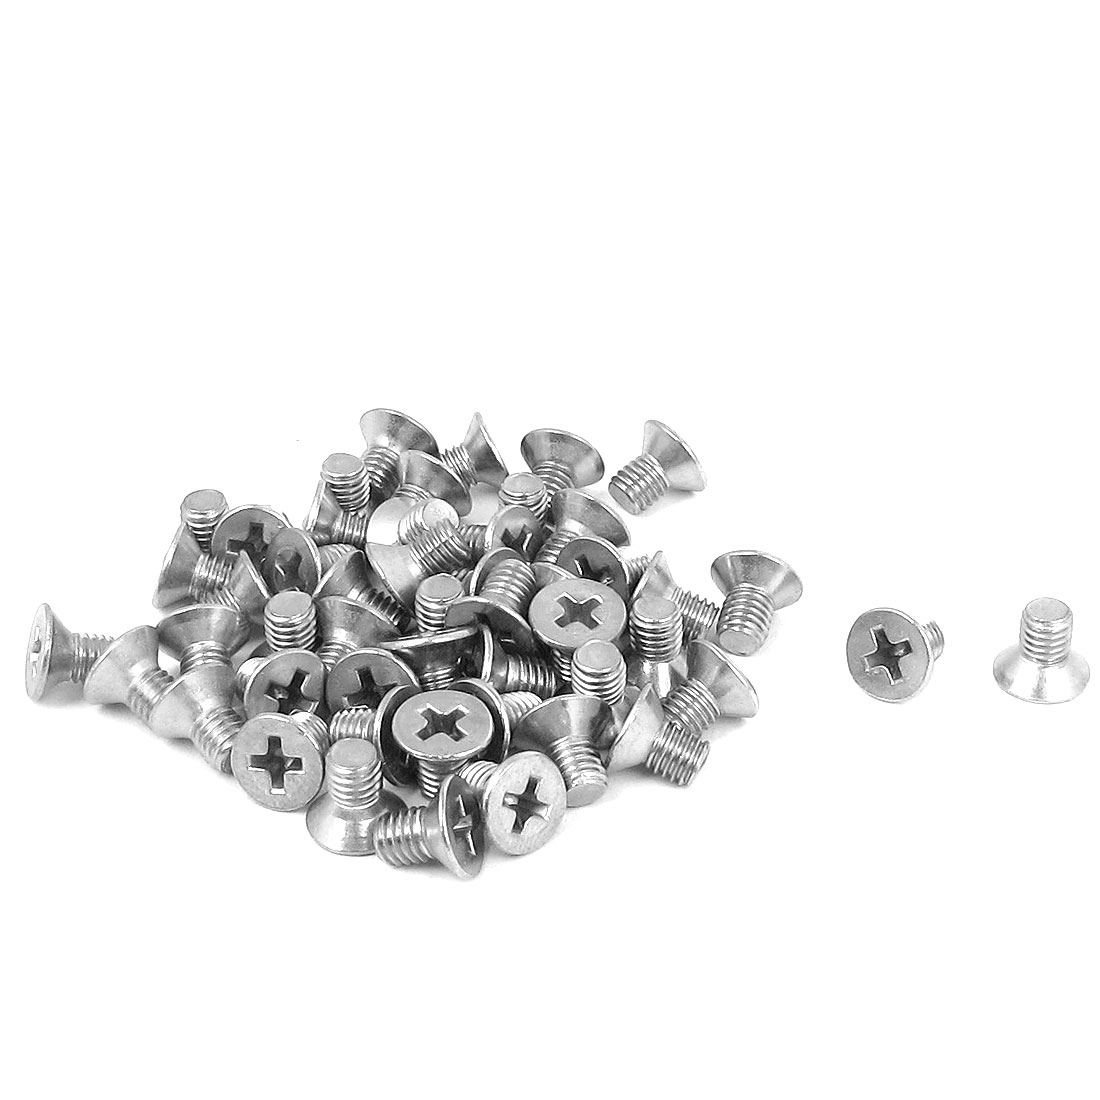 M5 x 8mm Metric Phillips Flat Head Countersunk Bolts Machine Screws 50pcs